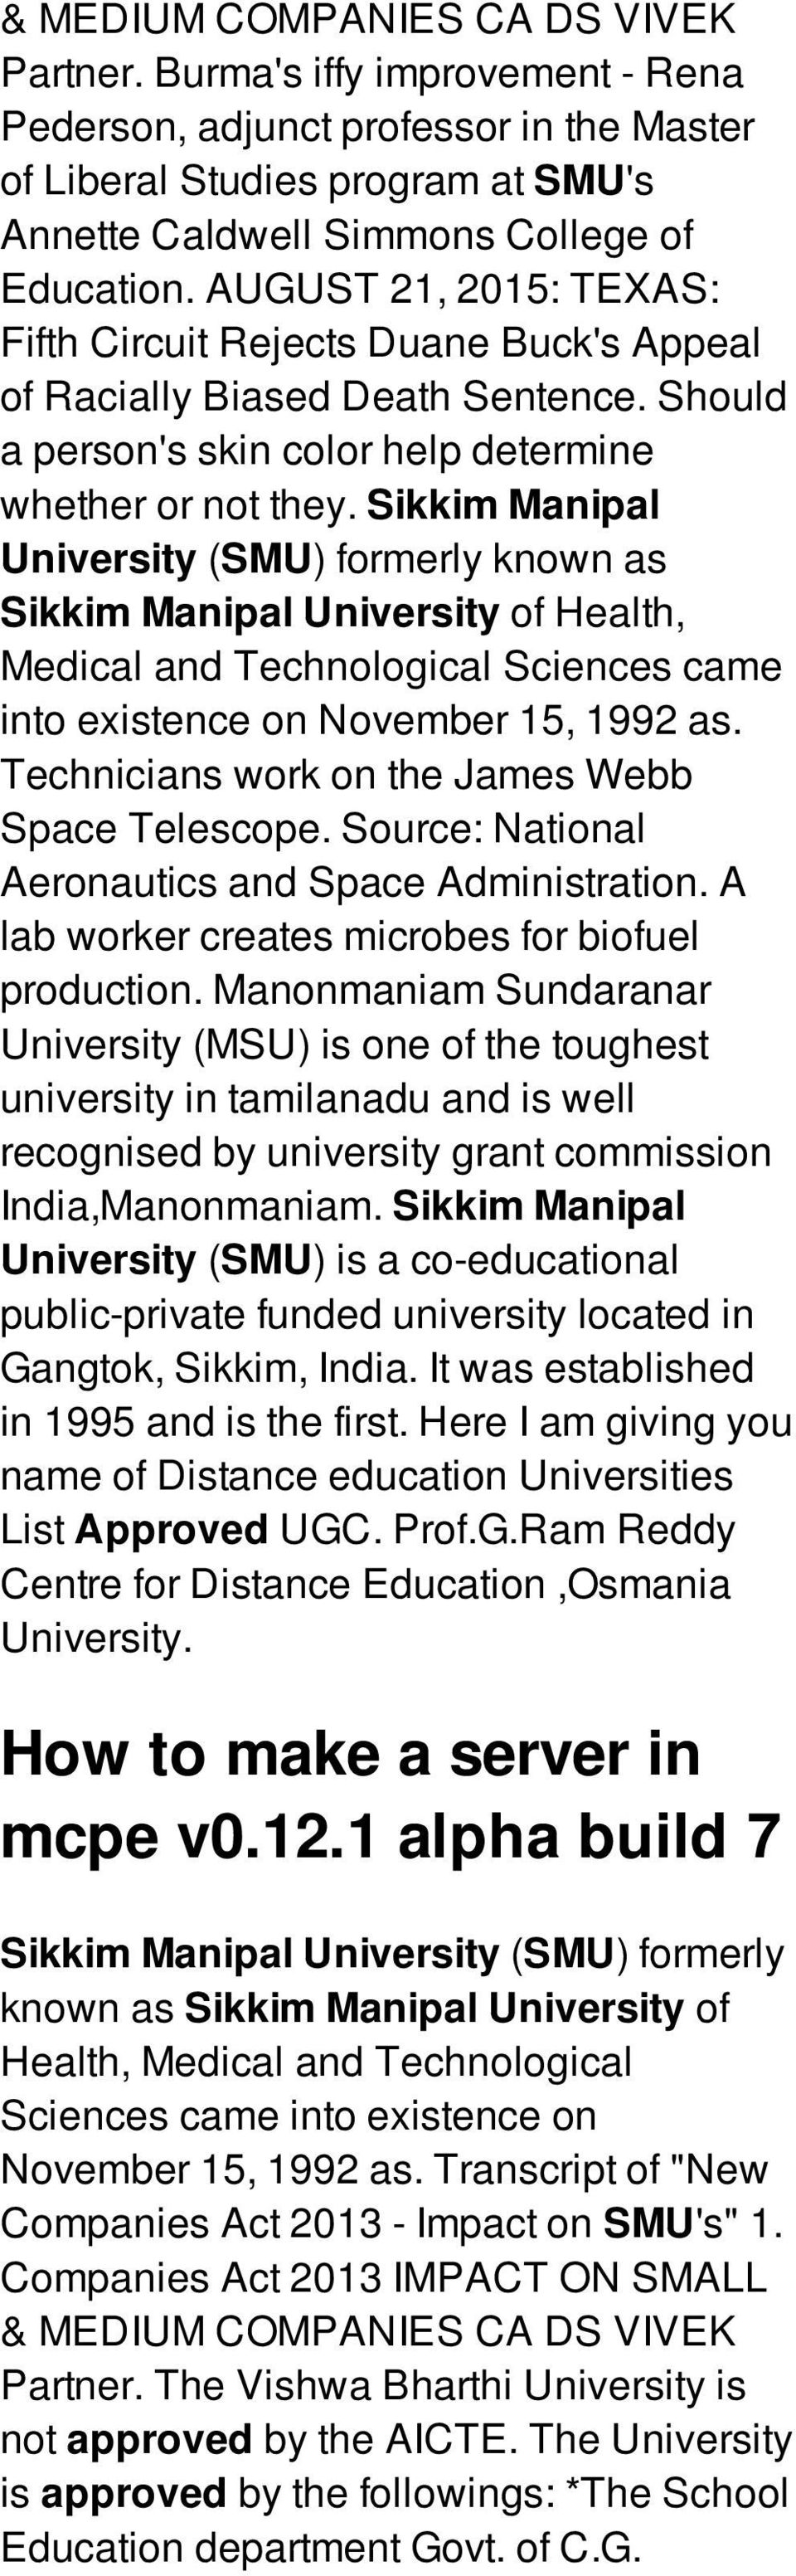 Sikkim Manipal University (SMU) formerly known as Sikkim Manipal University of Health, Medical and Technological Sciences came into existence on November 15, 1992 as.